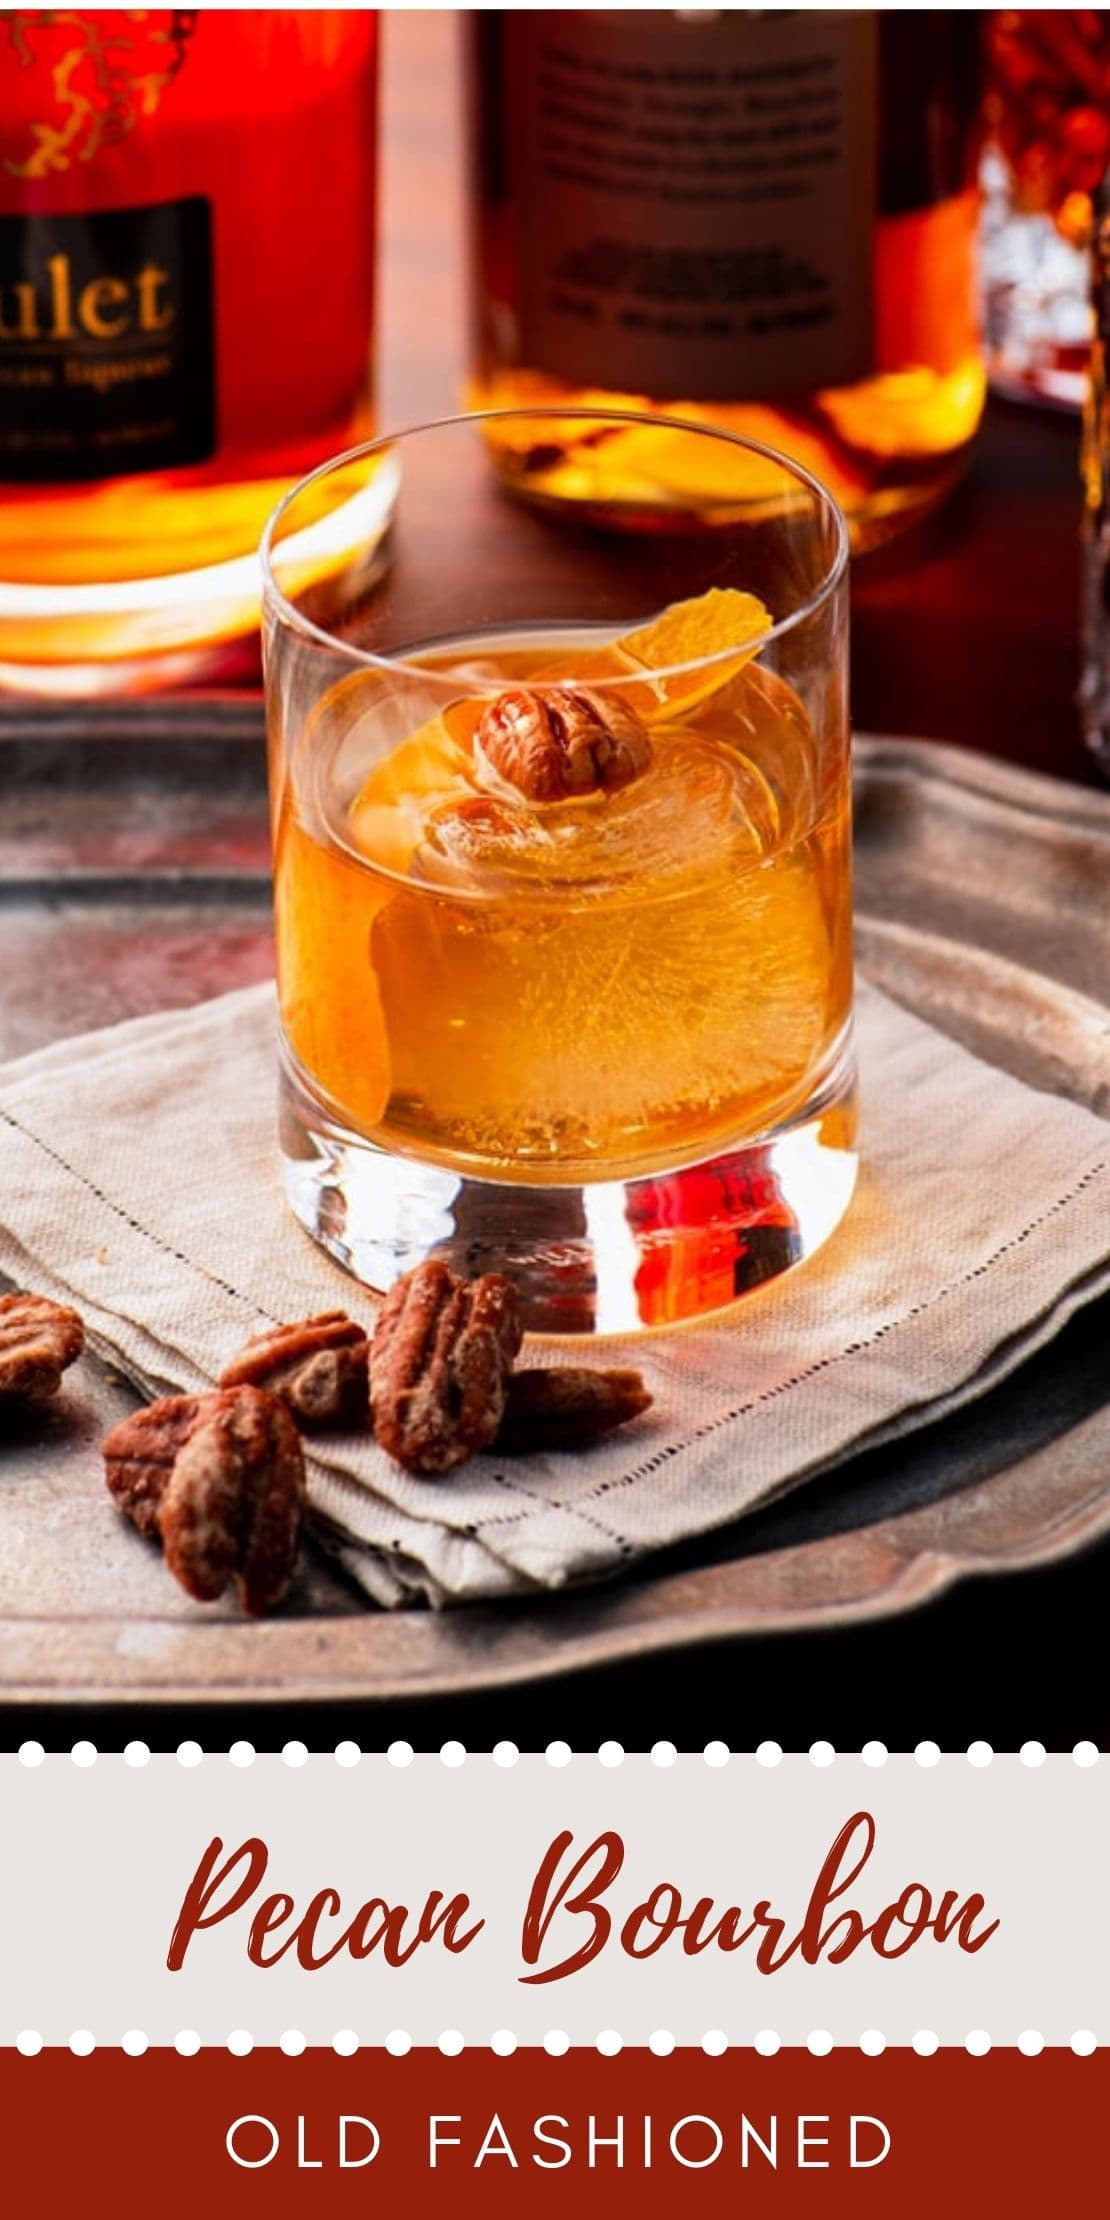 Pecan Bourbon Old Fashioned Cocktail - Pecan Bourbon Old Fashioned Cocktail Recipe